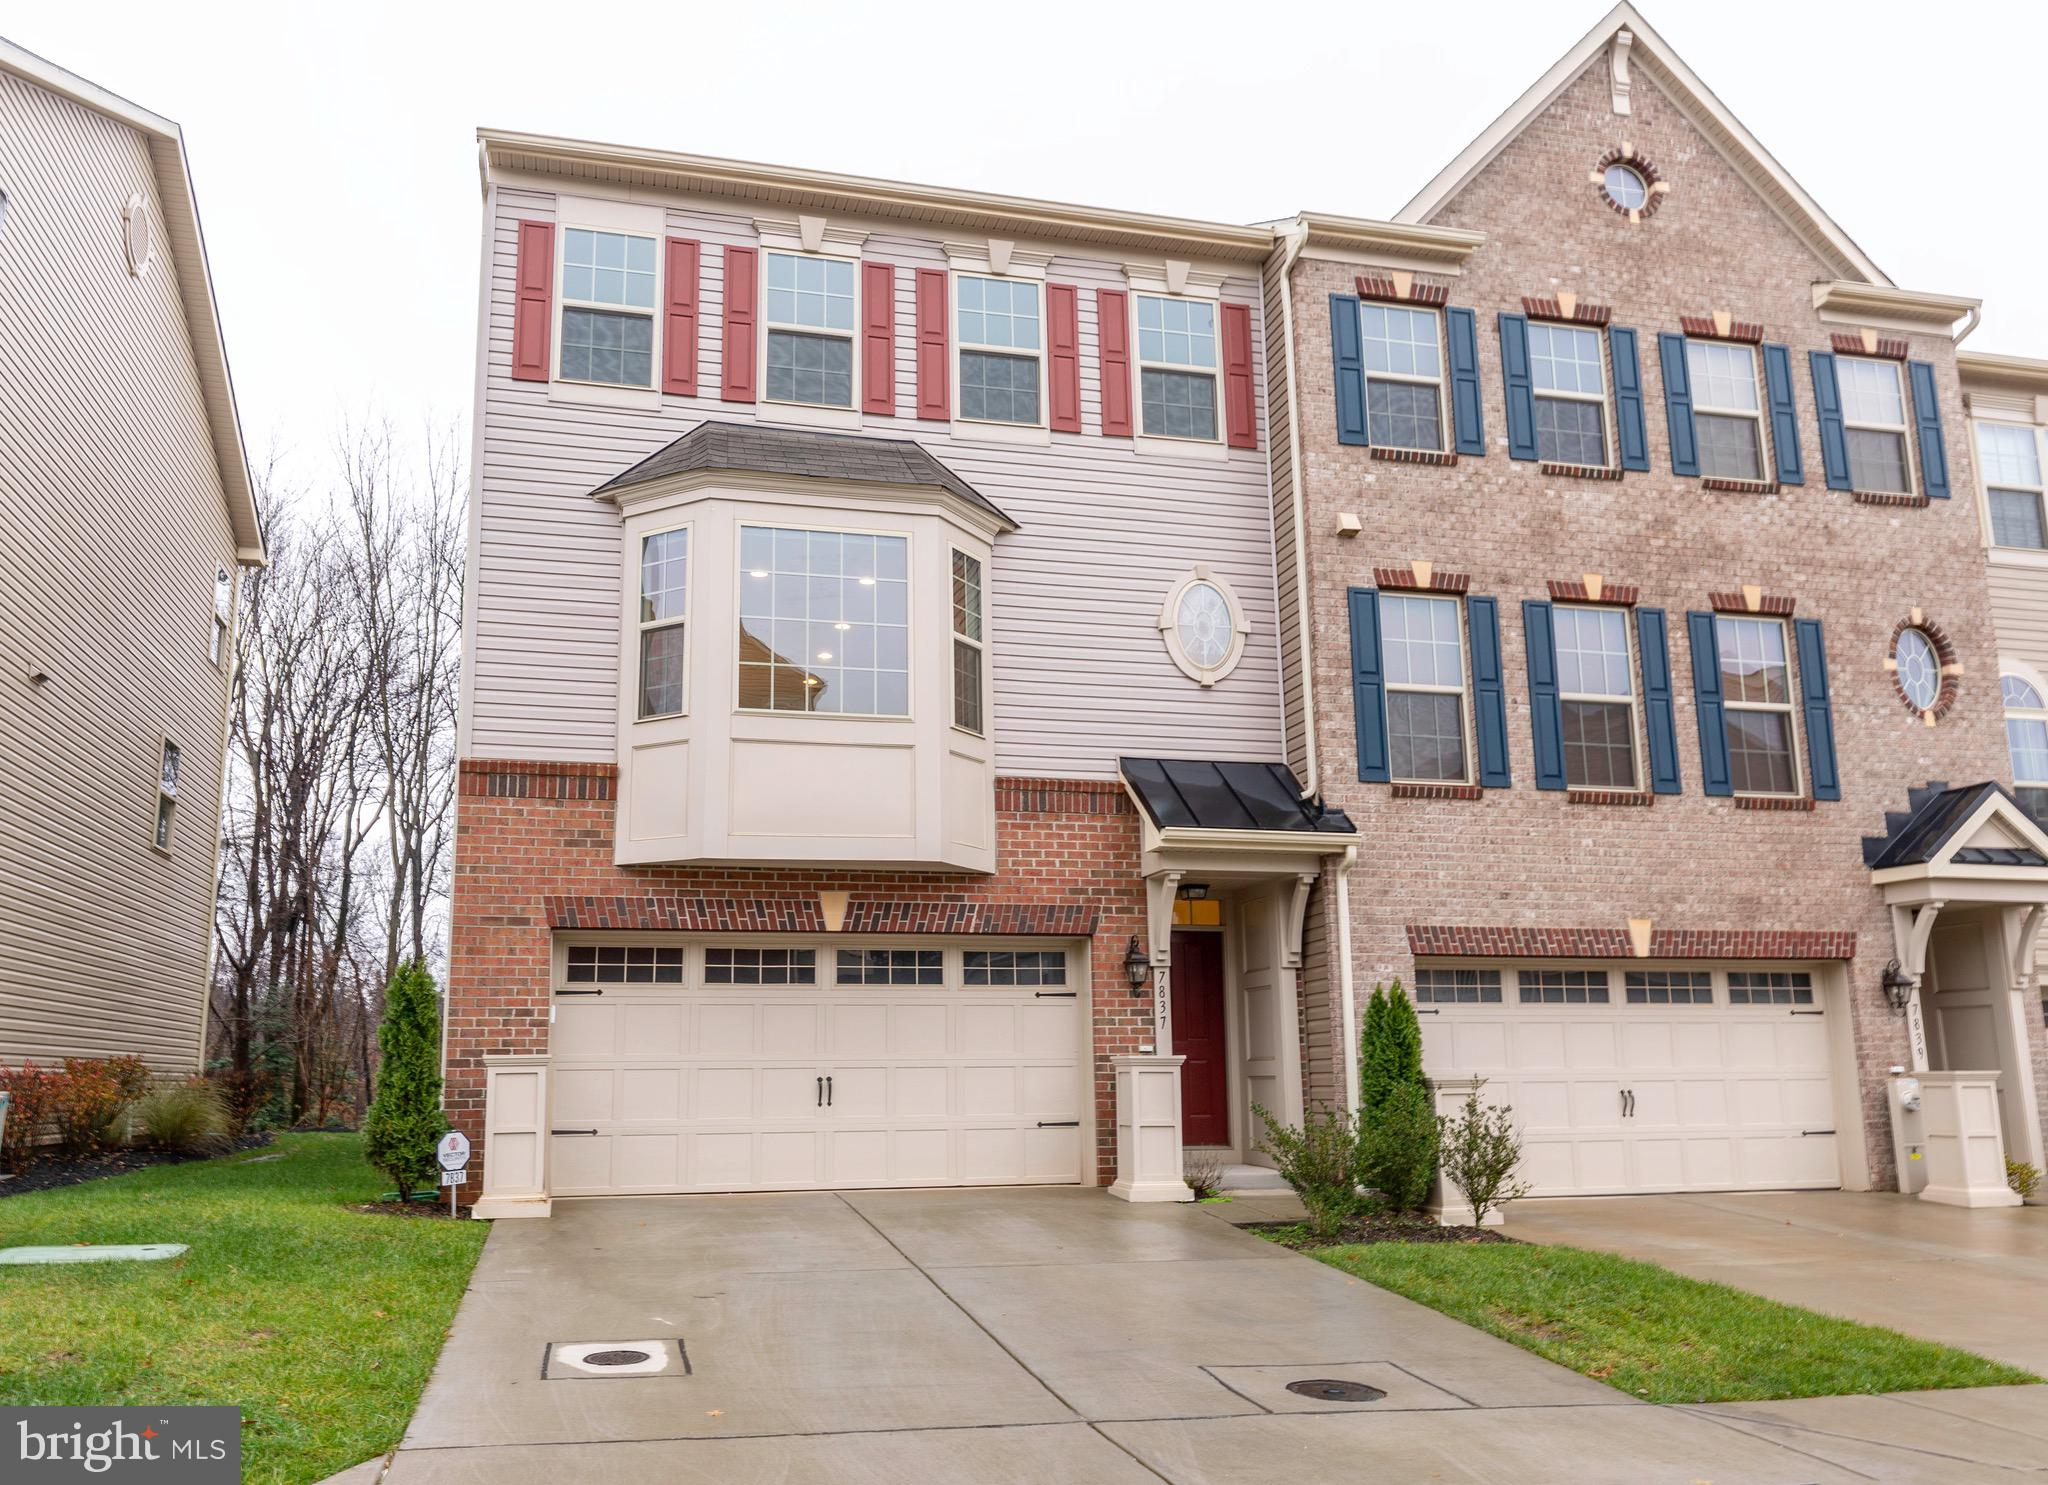 7837 RAPPAPORT DRIVE, JESSUP, MD 20794